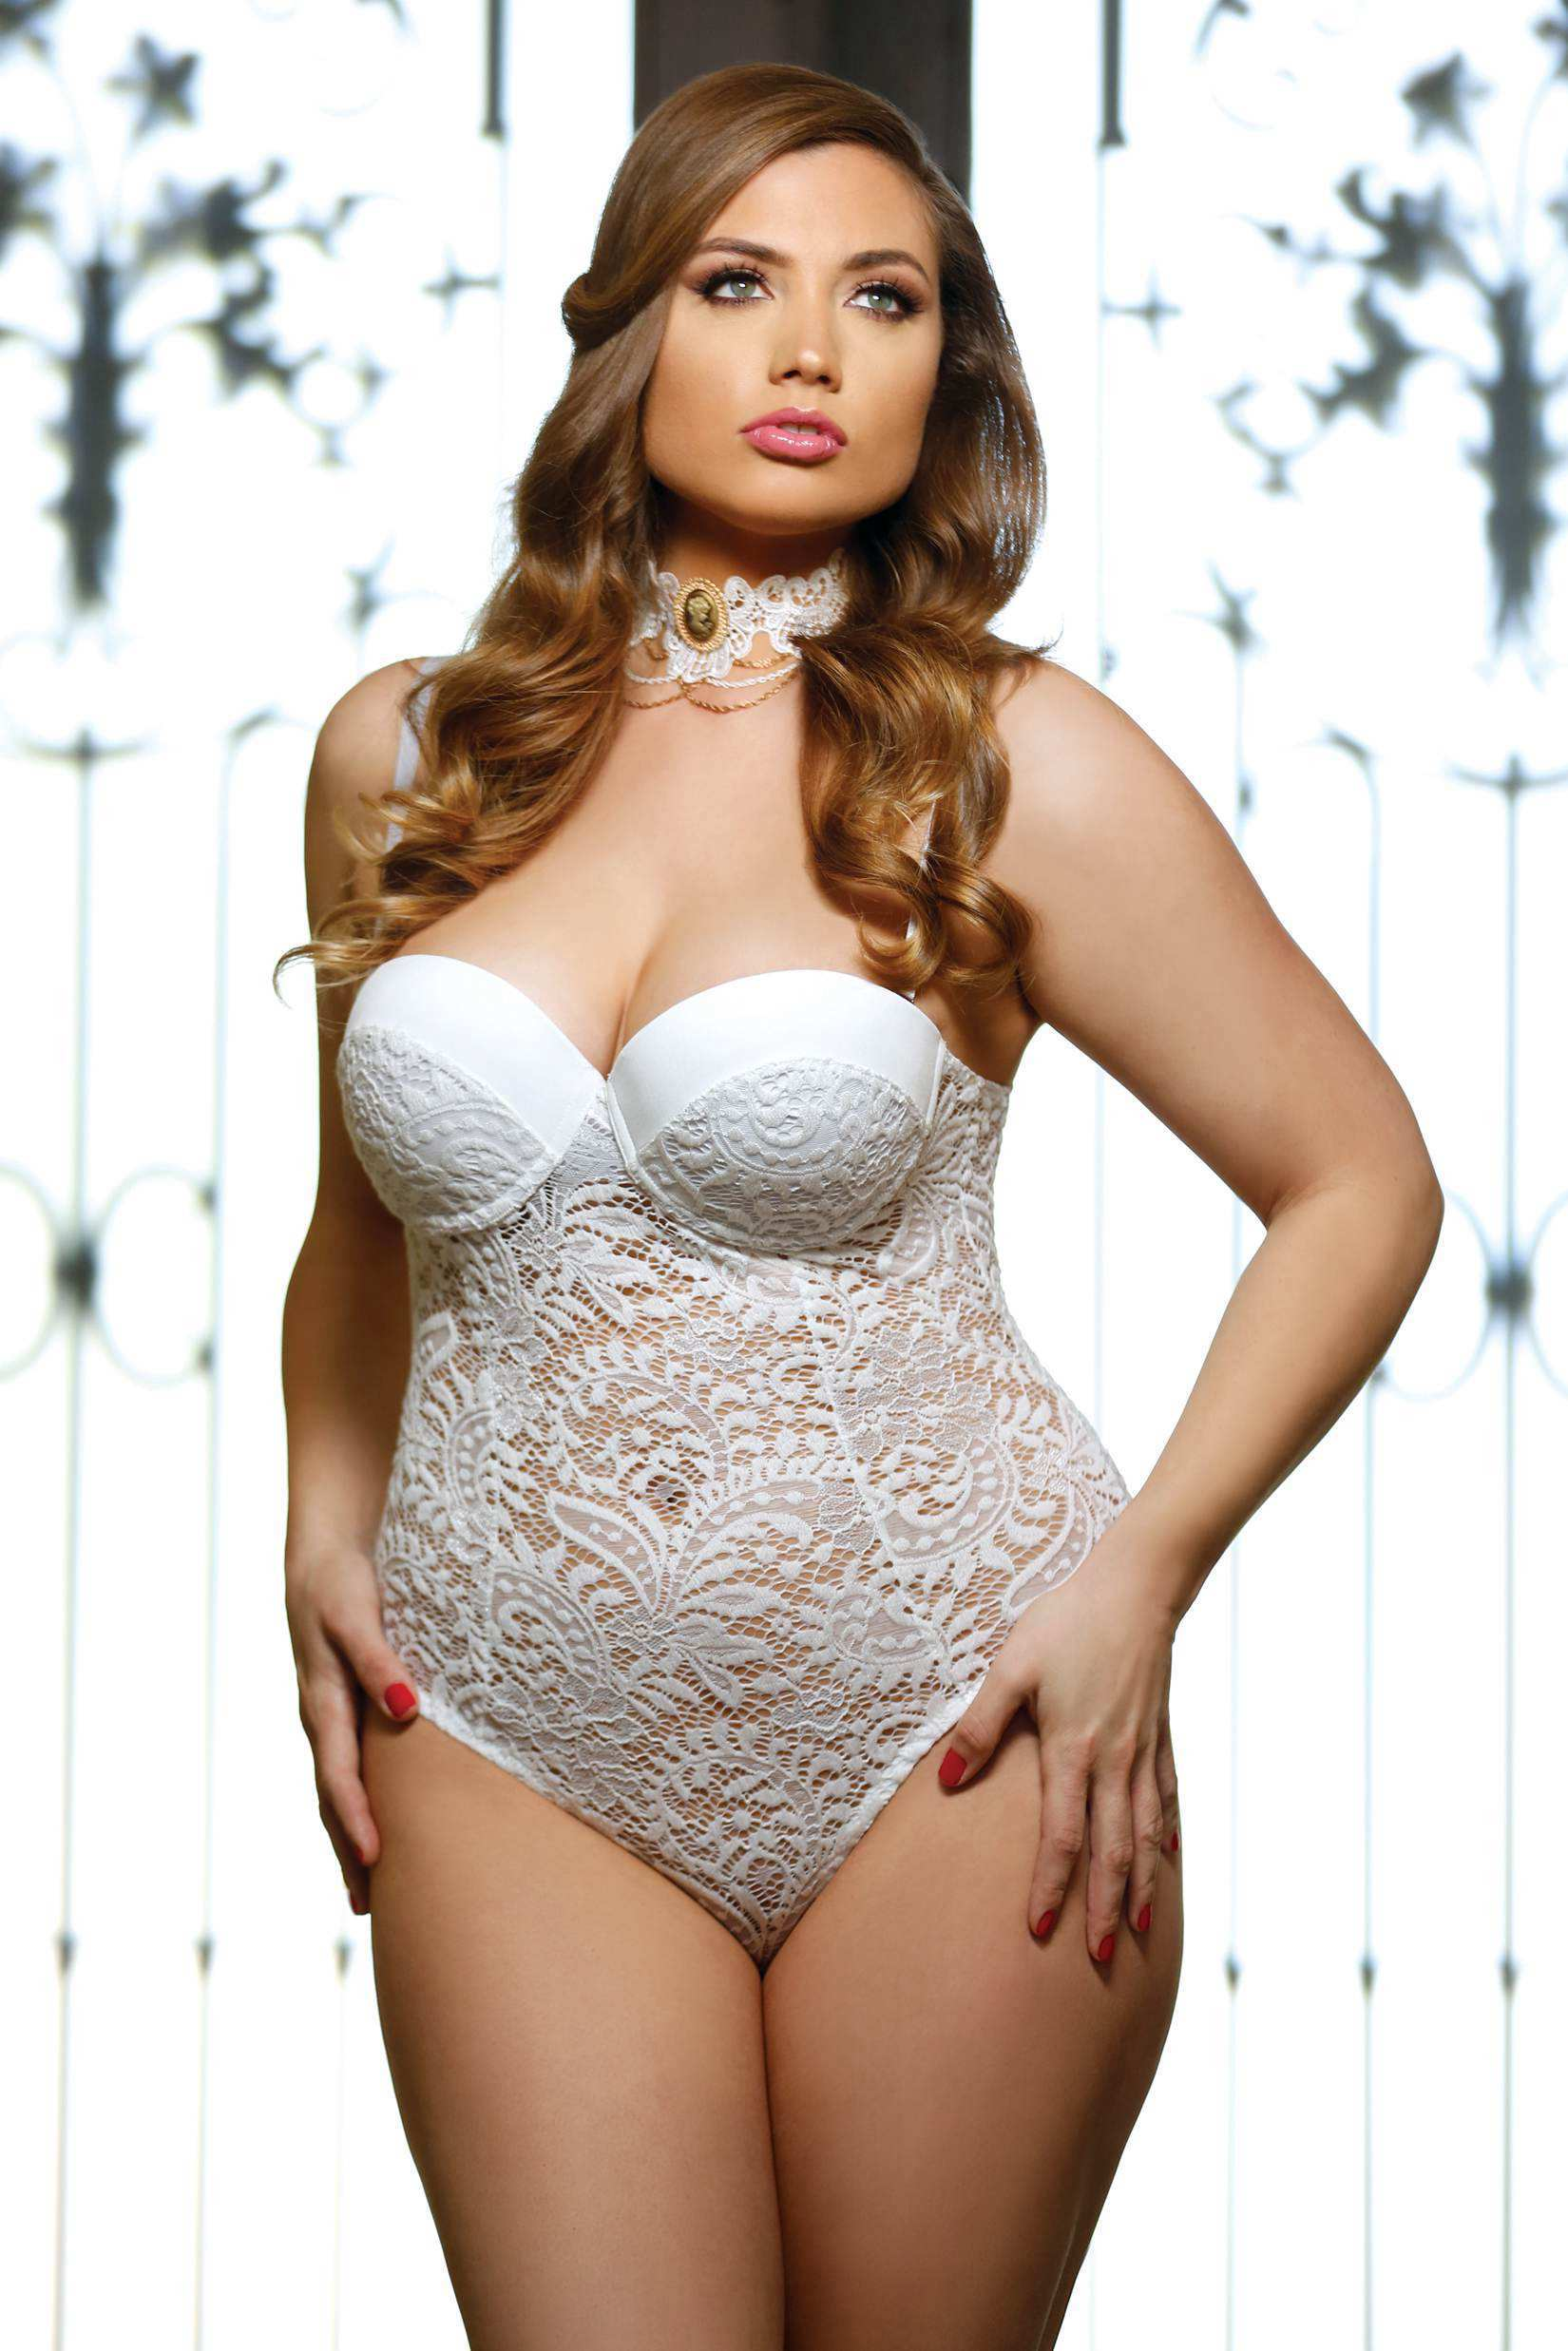 Plus Size Lingerie 5X Lace Bridal Teddy SEXY Wedding Lingere Push ...